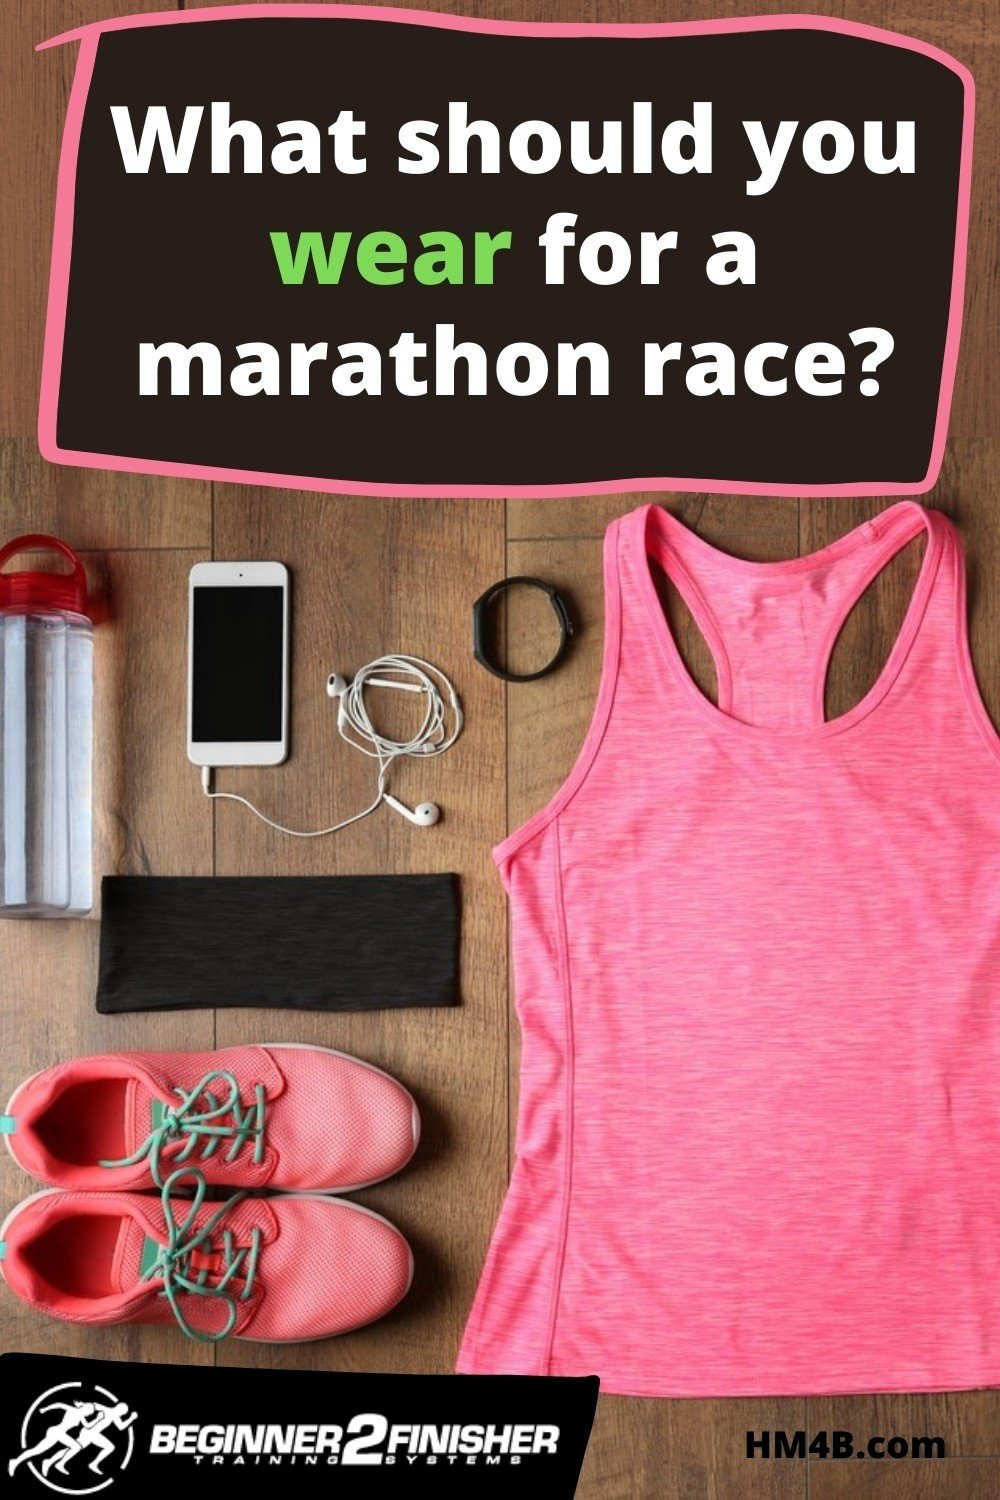 What Should I Wear For My Marathon Race?